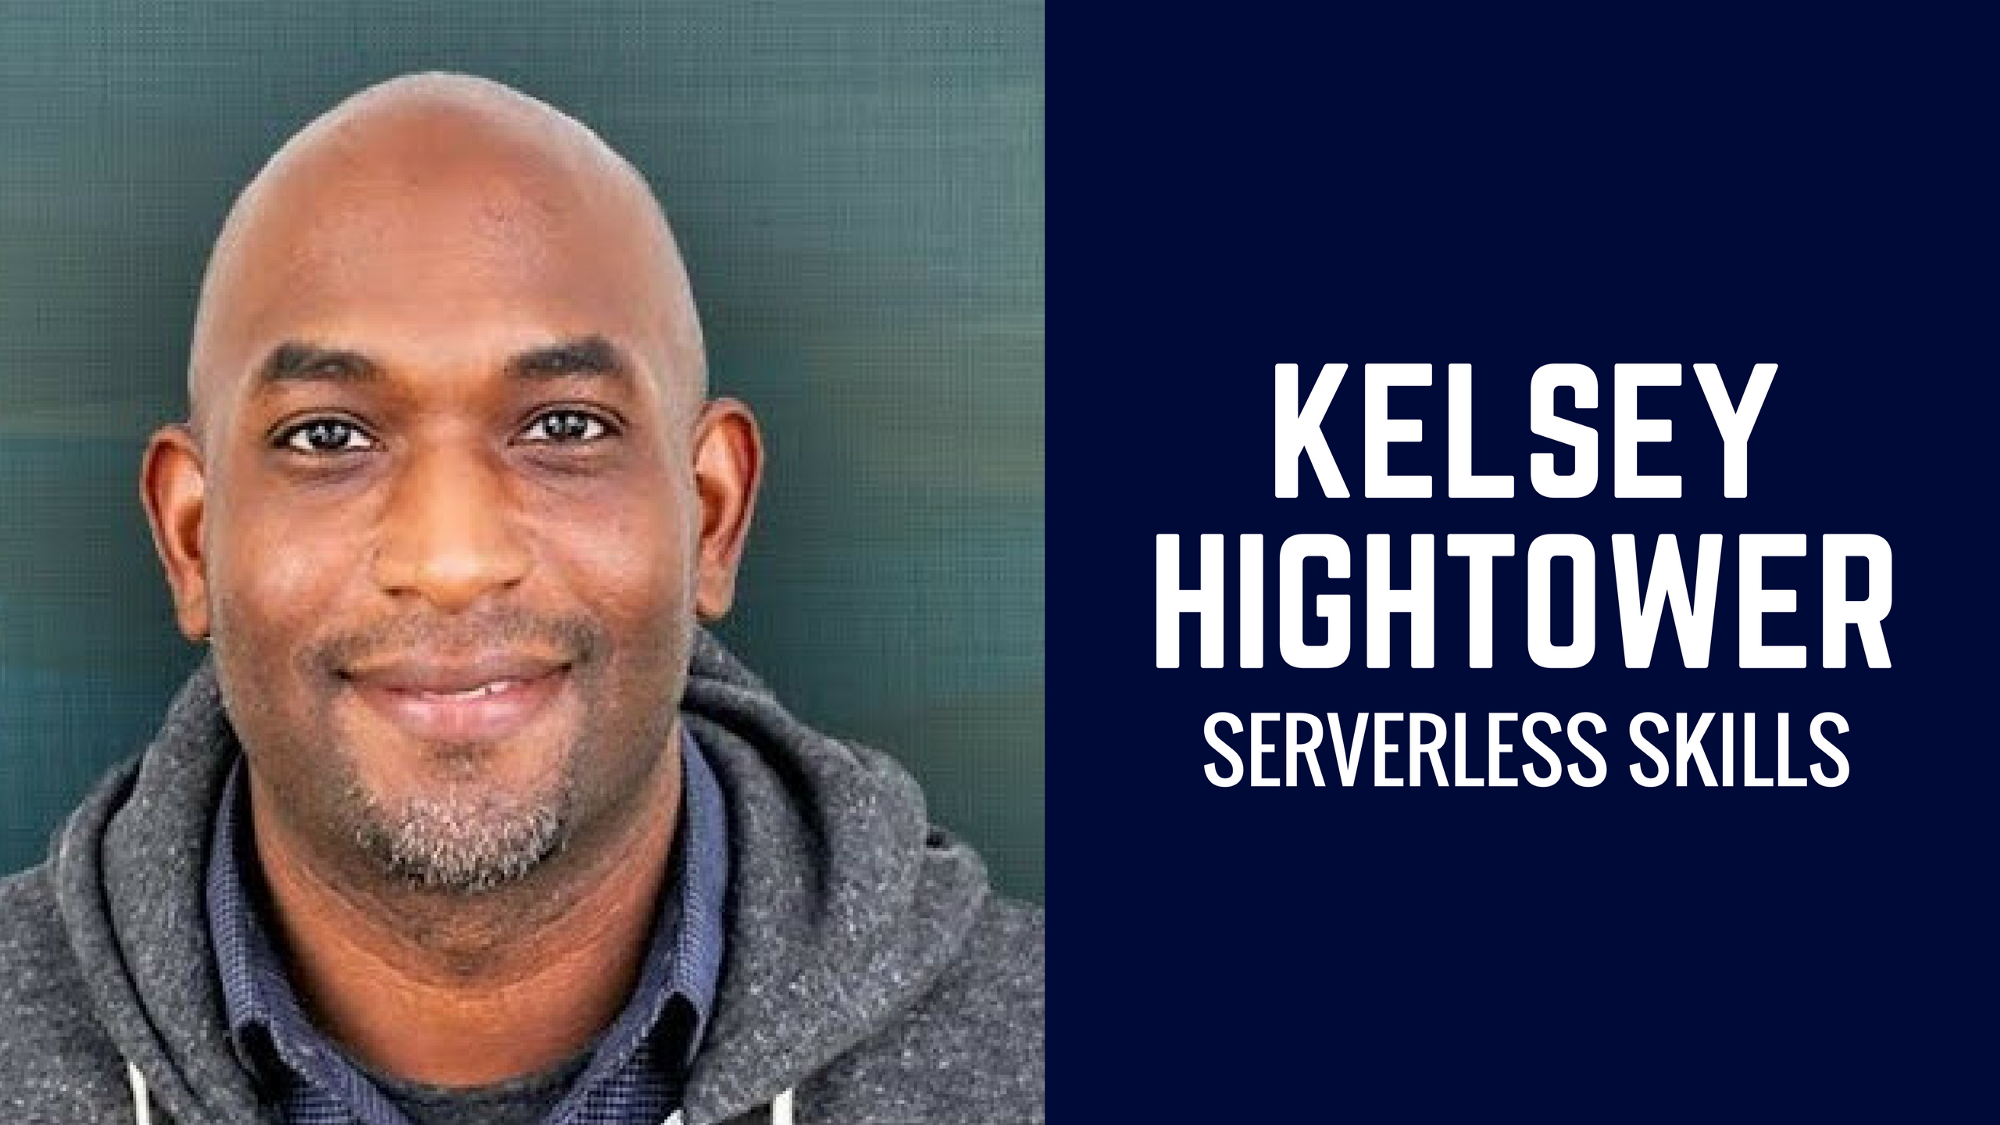 You need SRE skills to thrive in a serverless world — Kelsey Hightower